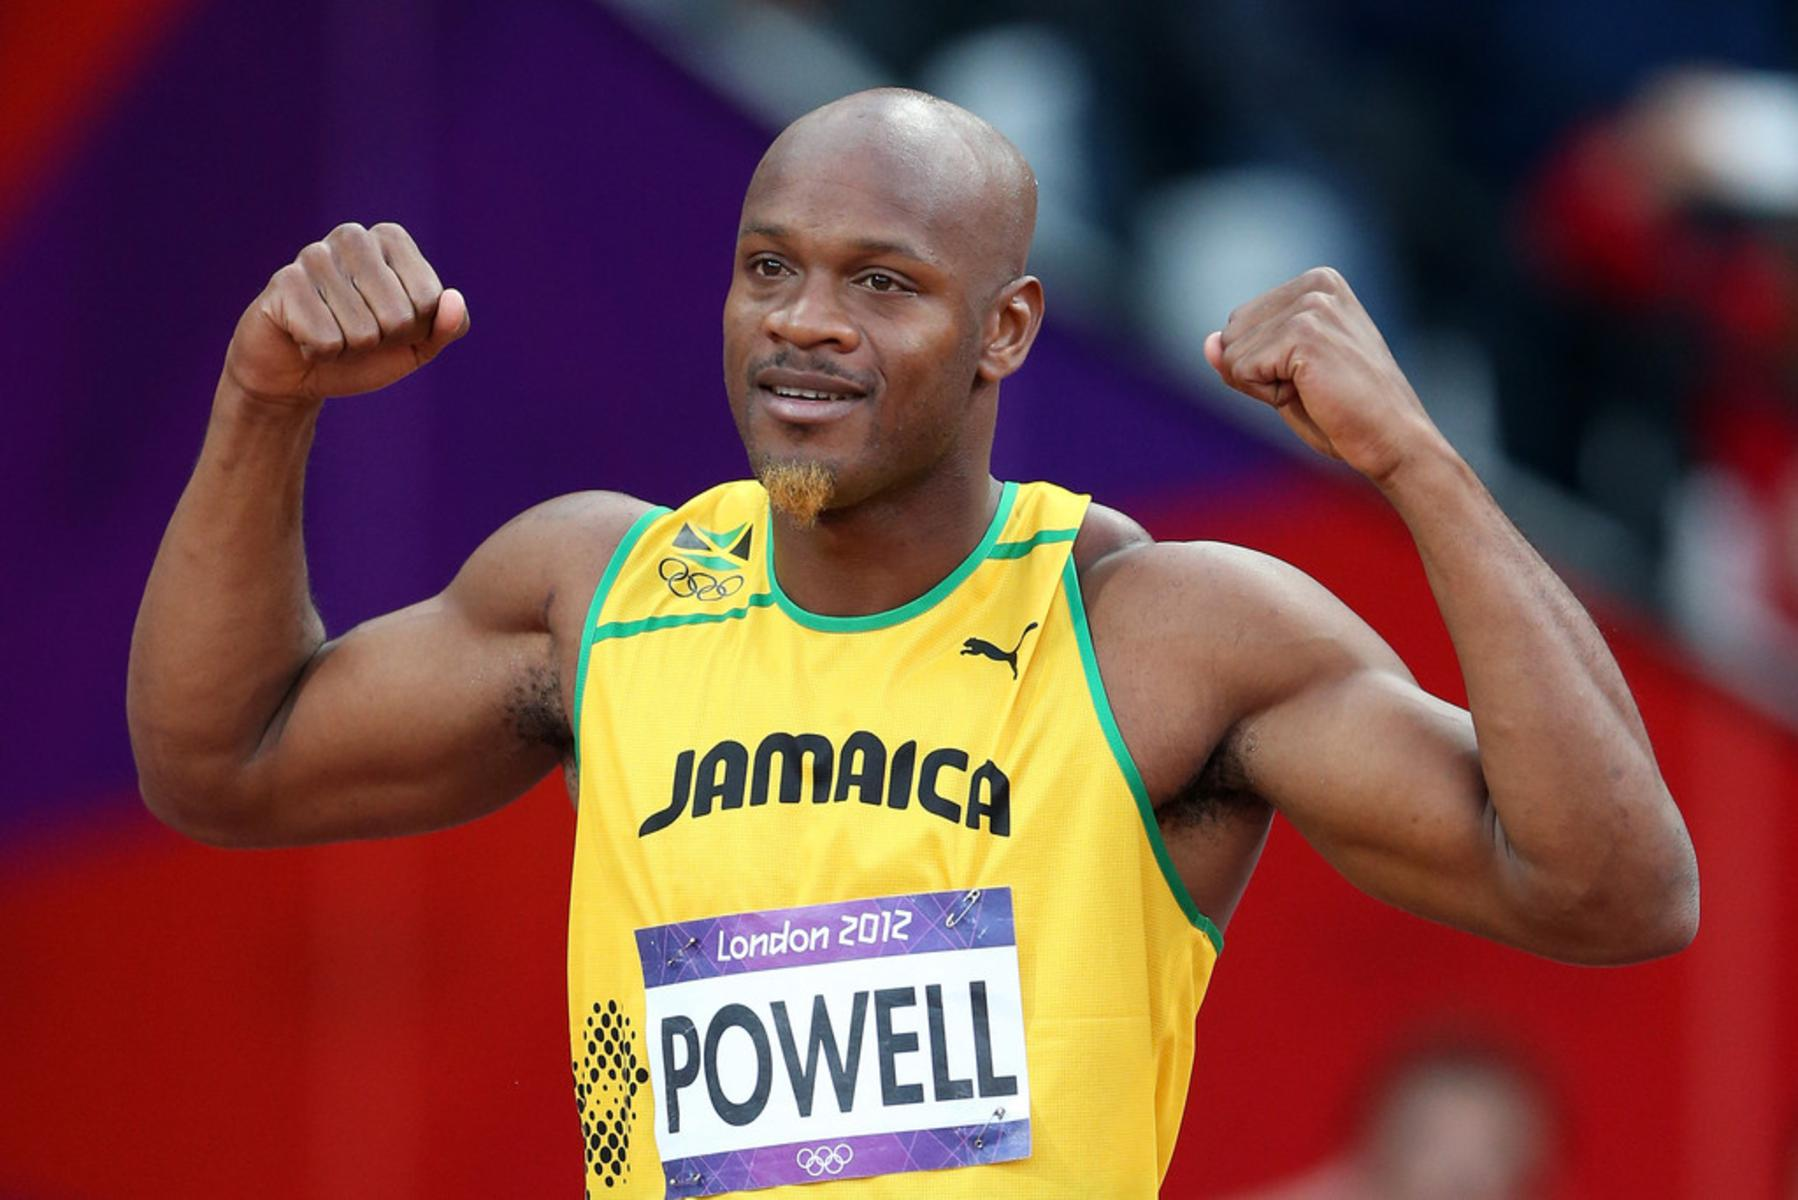 Former world 100 metres record holder Asafa Powell is one of several Jamaicans currently under investigation after testing positive for banned drugs